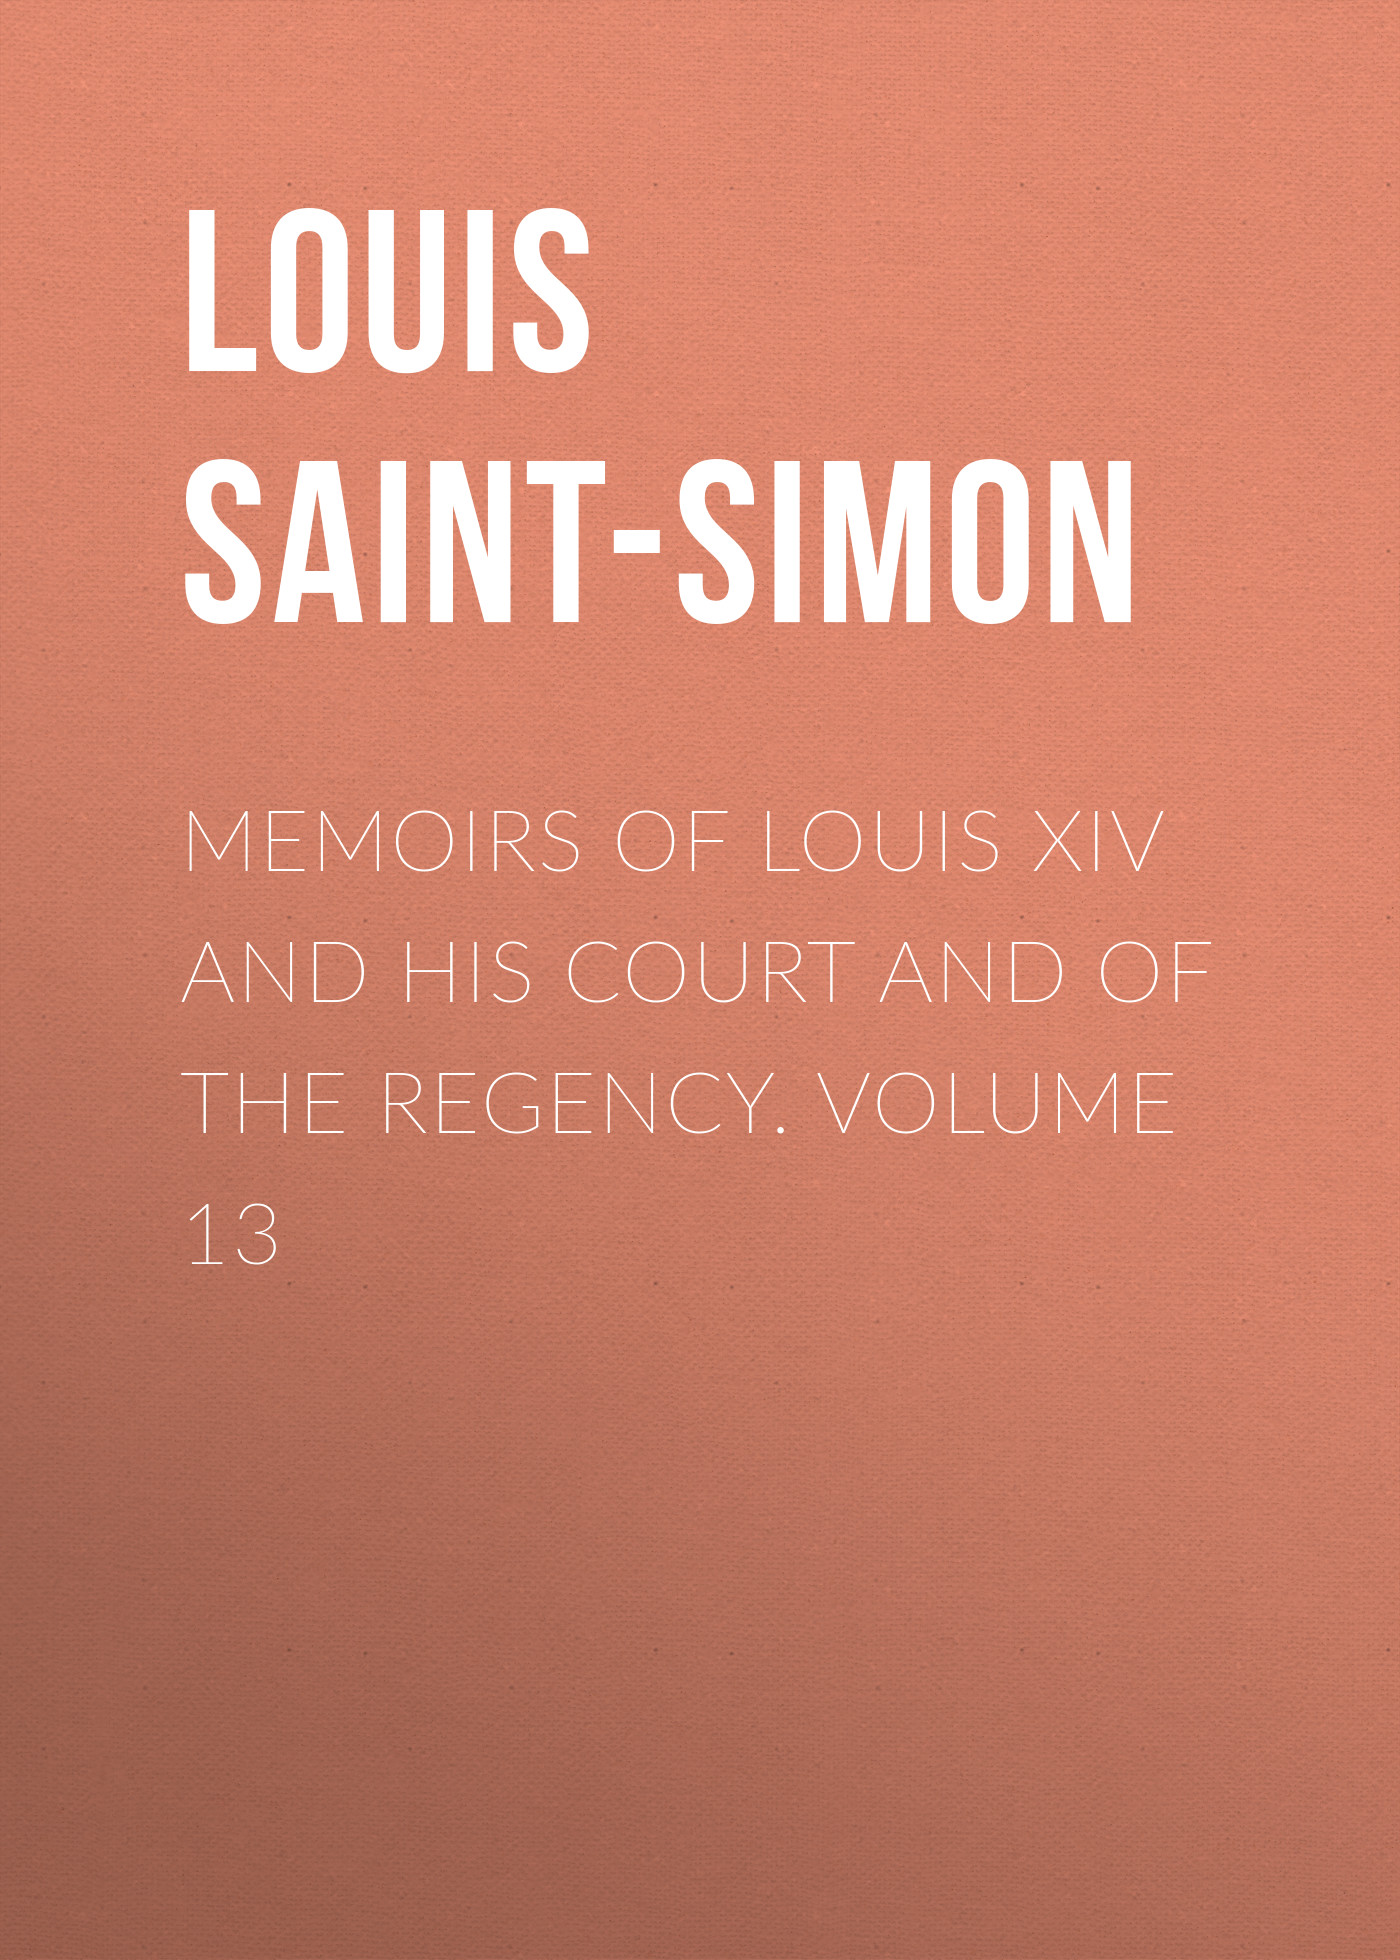 Фото - Louis Saint-Simon Memoirs of Louis XIV and His Court and of the Regency. Volume 13 jules marcou life letters and works of louis agassiz volume i